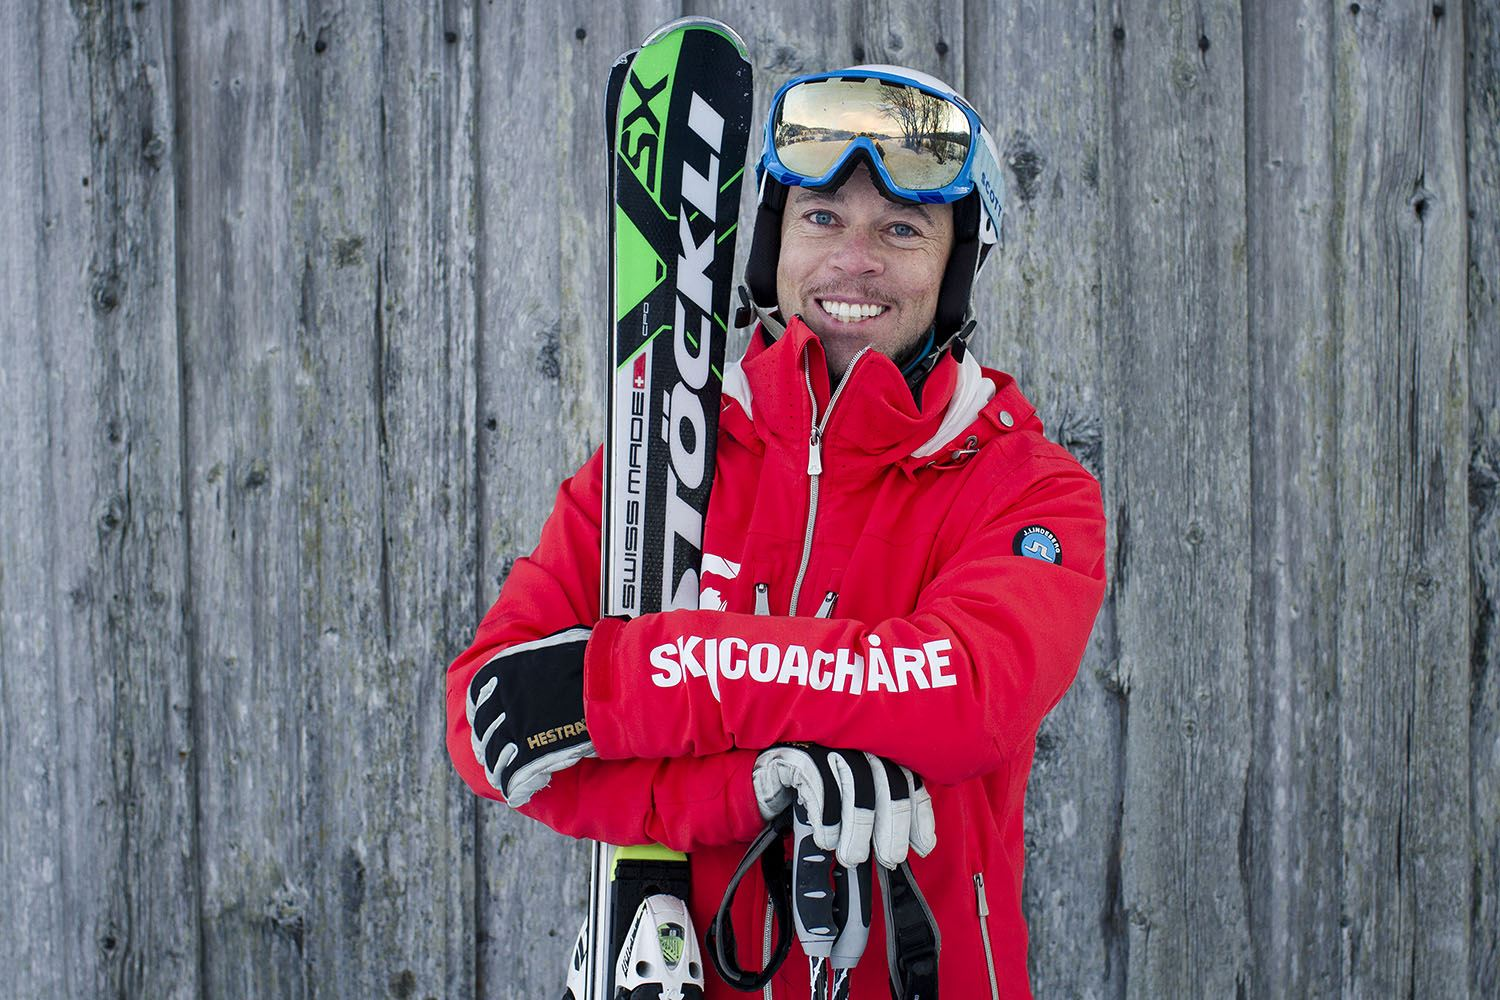 Skicoach - the ski instructor for those who are passionate about skiing